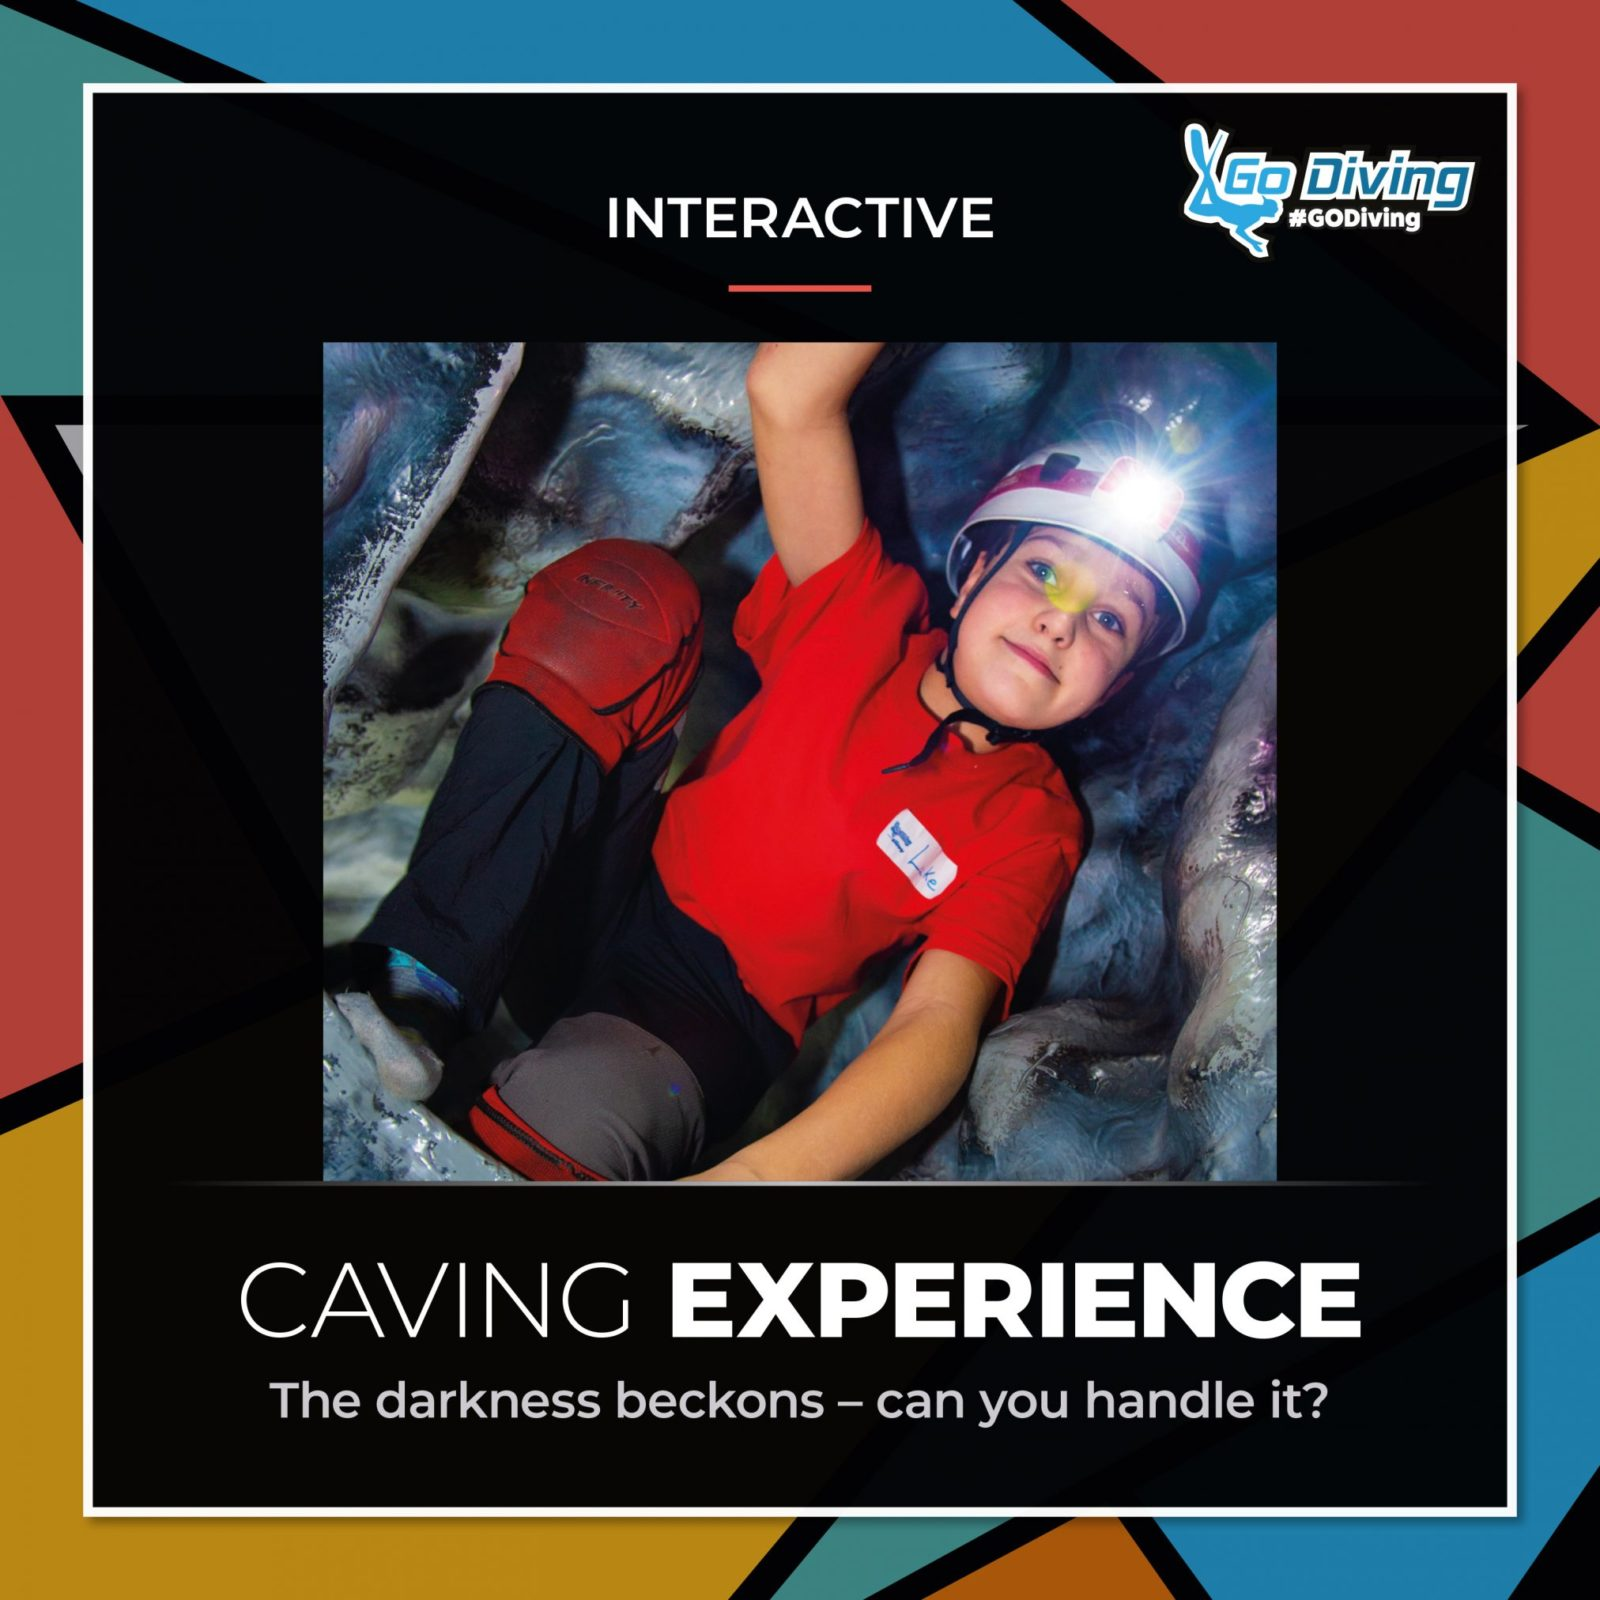 The darkness beckons at GO Diving Show - are you ready for The Cave? 2